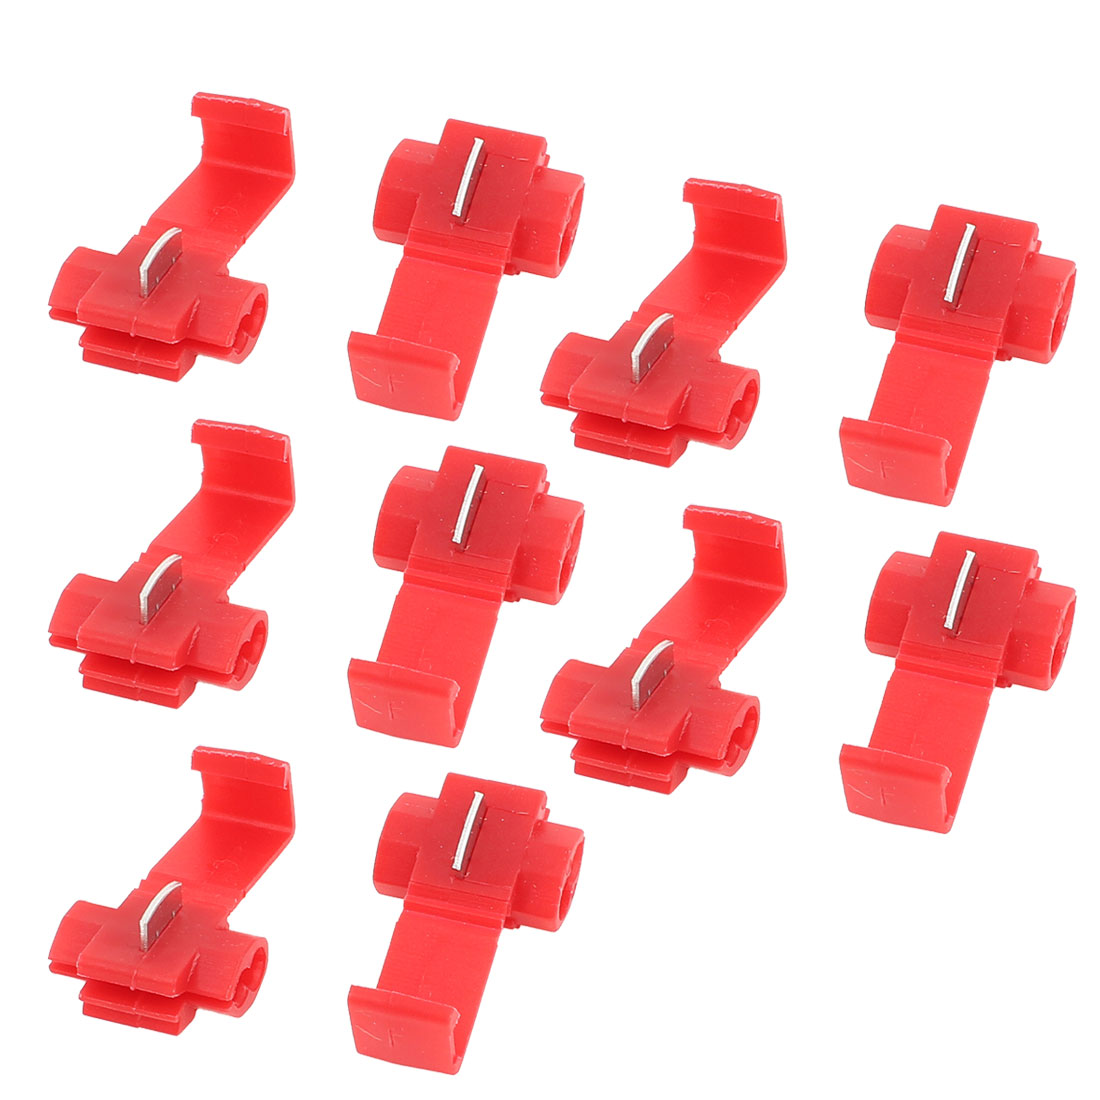 10 Pcs Red Plastic 2 Holes Adjustable Wire Cord Cable Clips Organizer